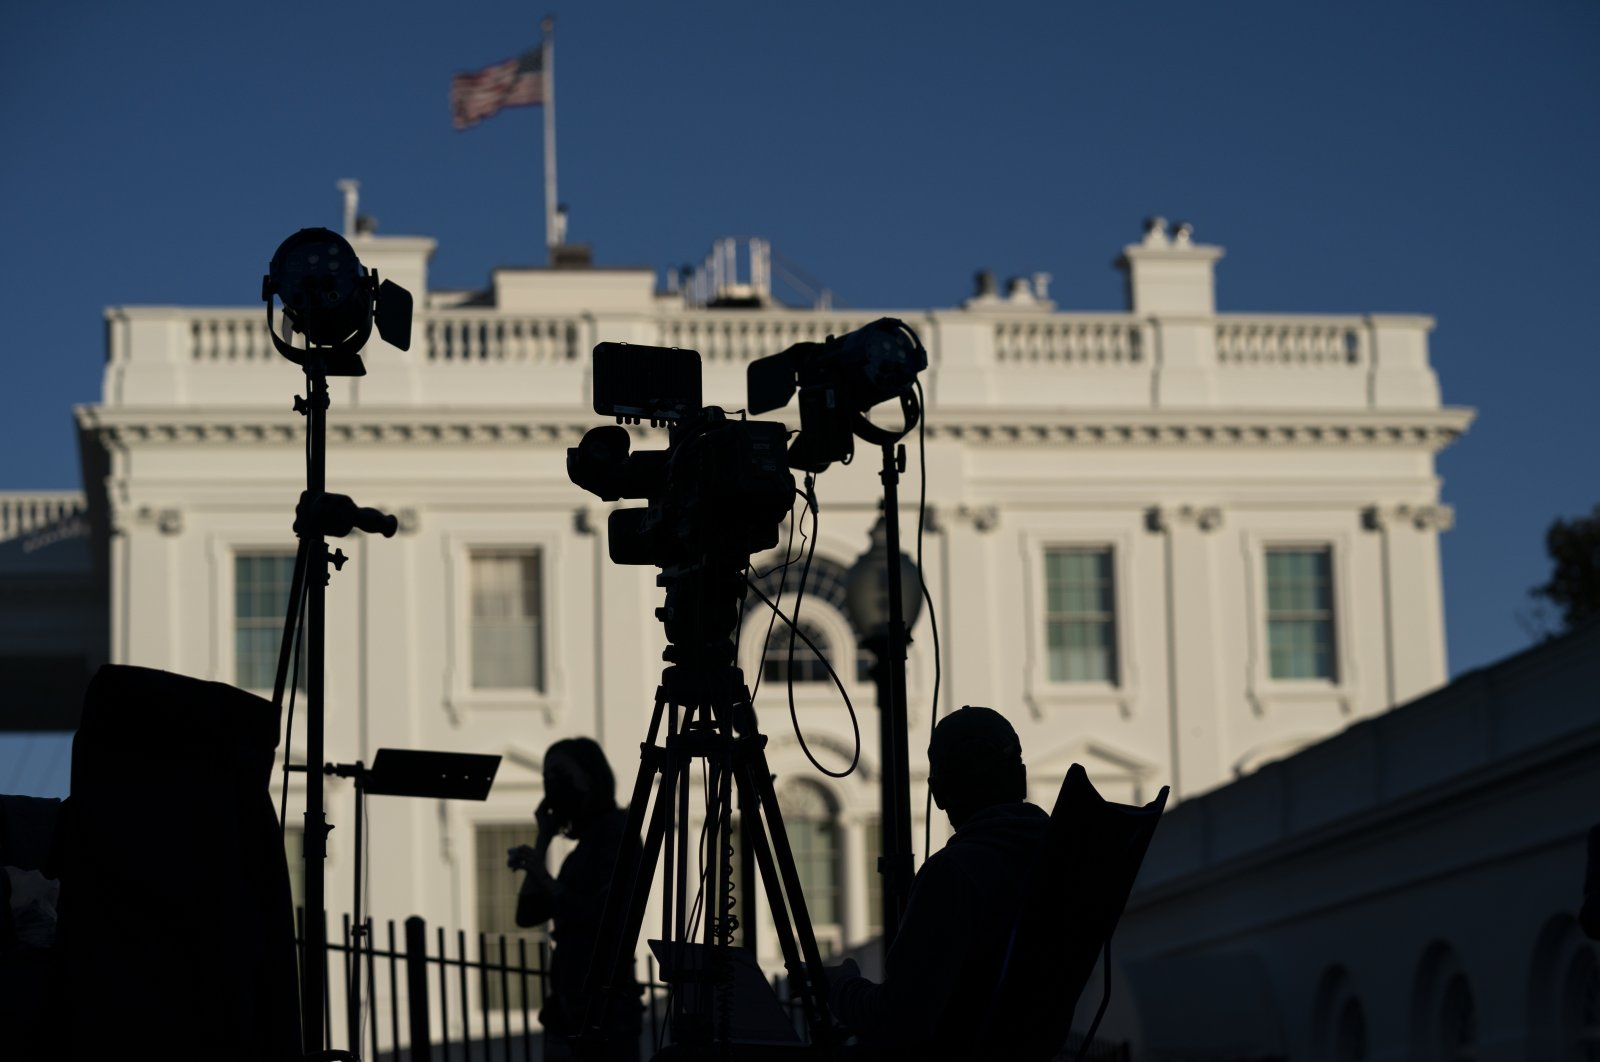 Journalists gather outside the White House in Washington D.C., the U.S., Nov. 4, 2020. (AP Photo/Evan Vucci, File)